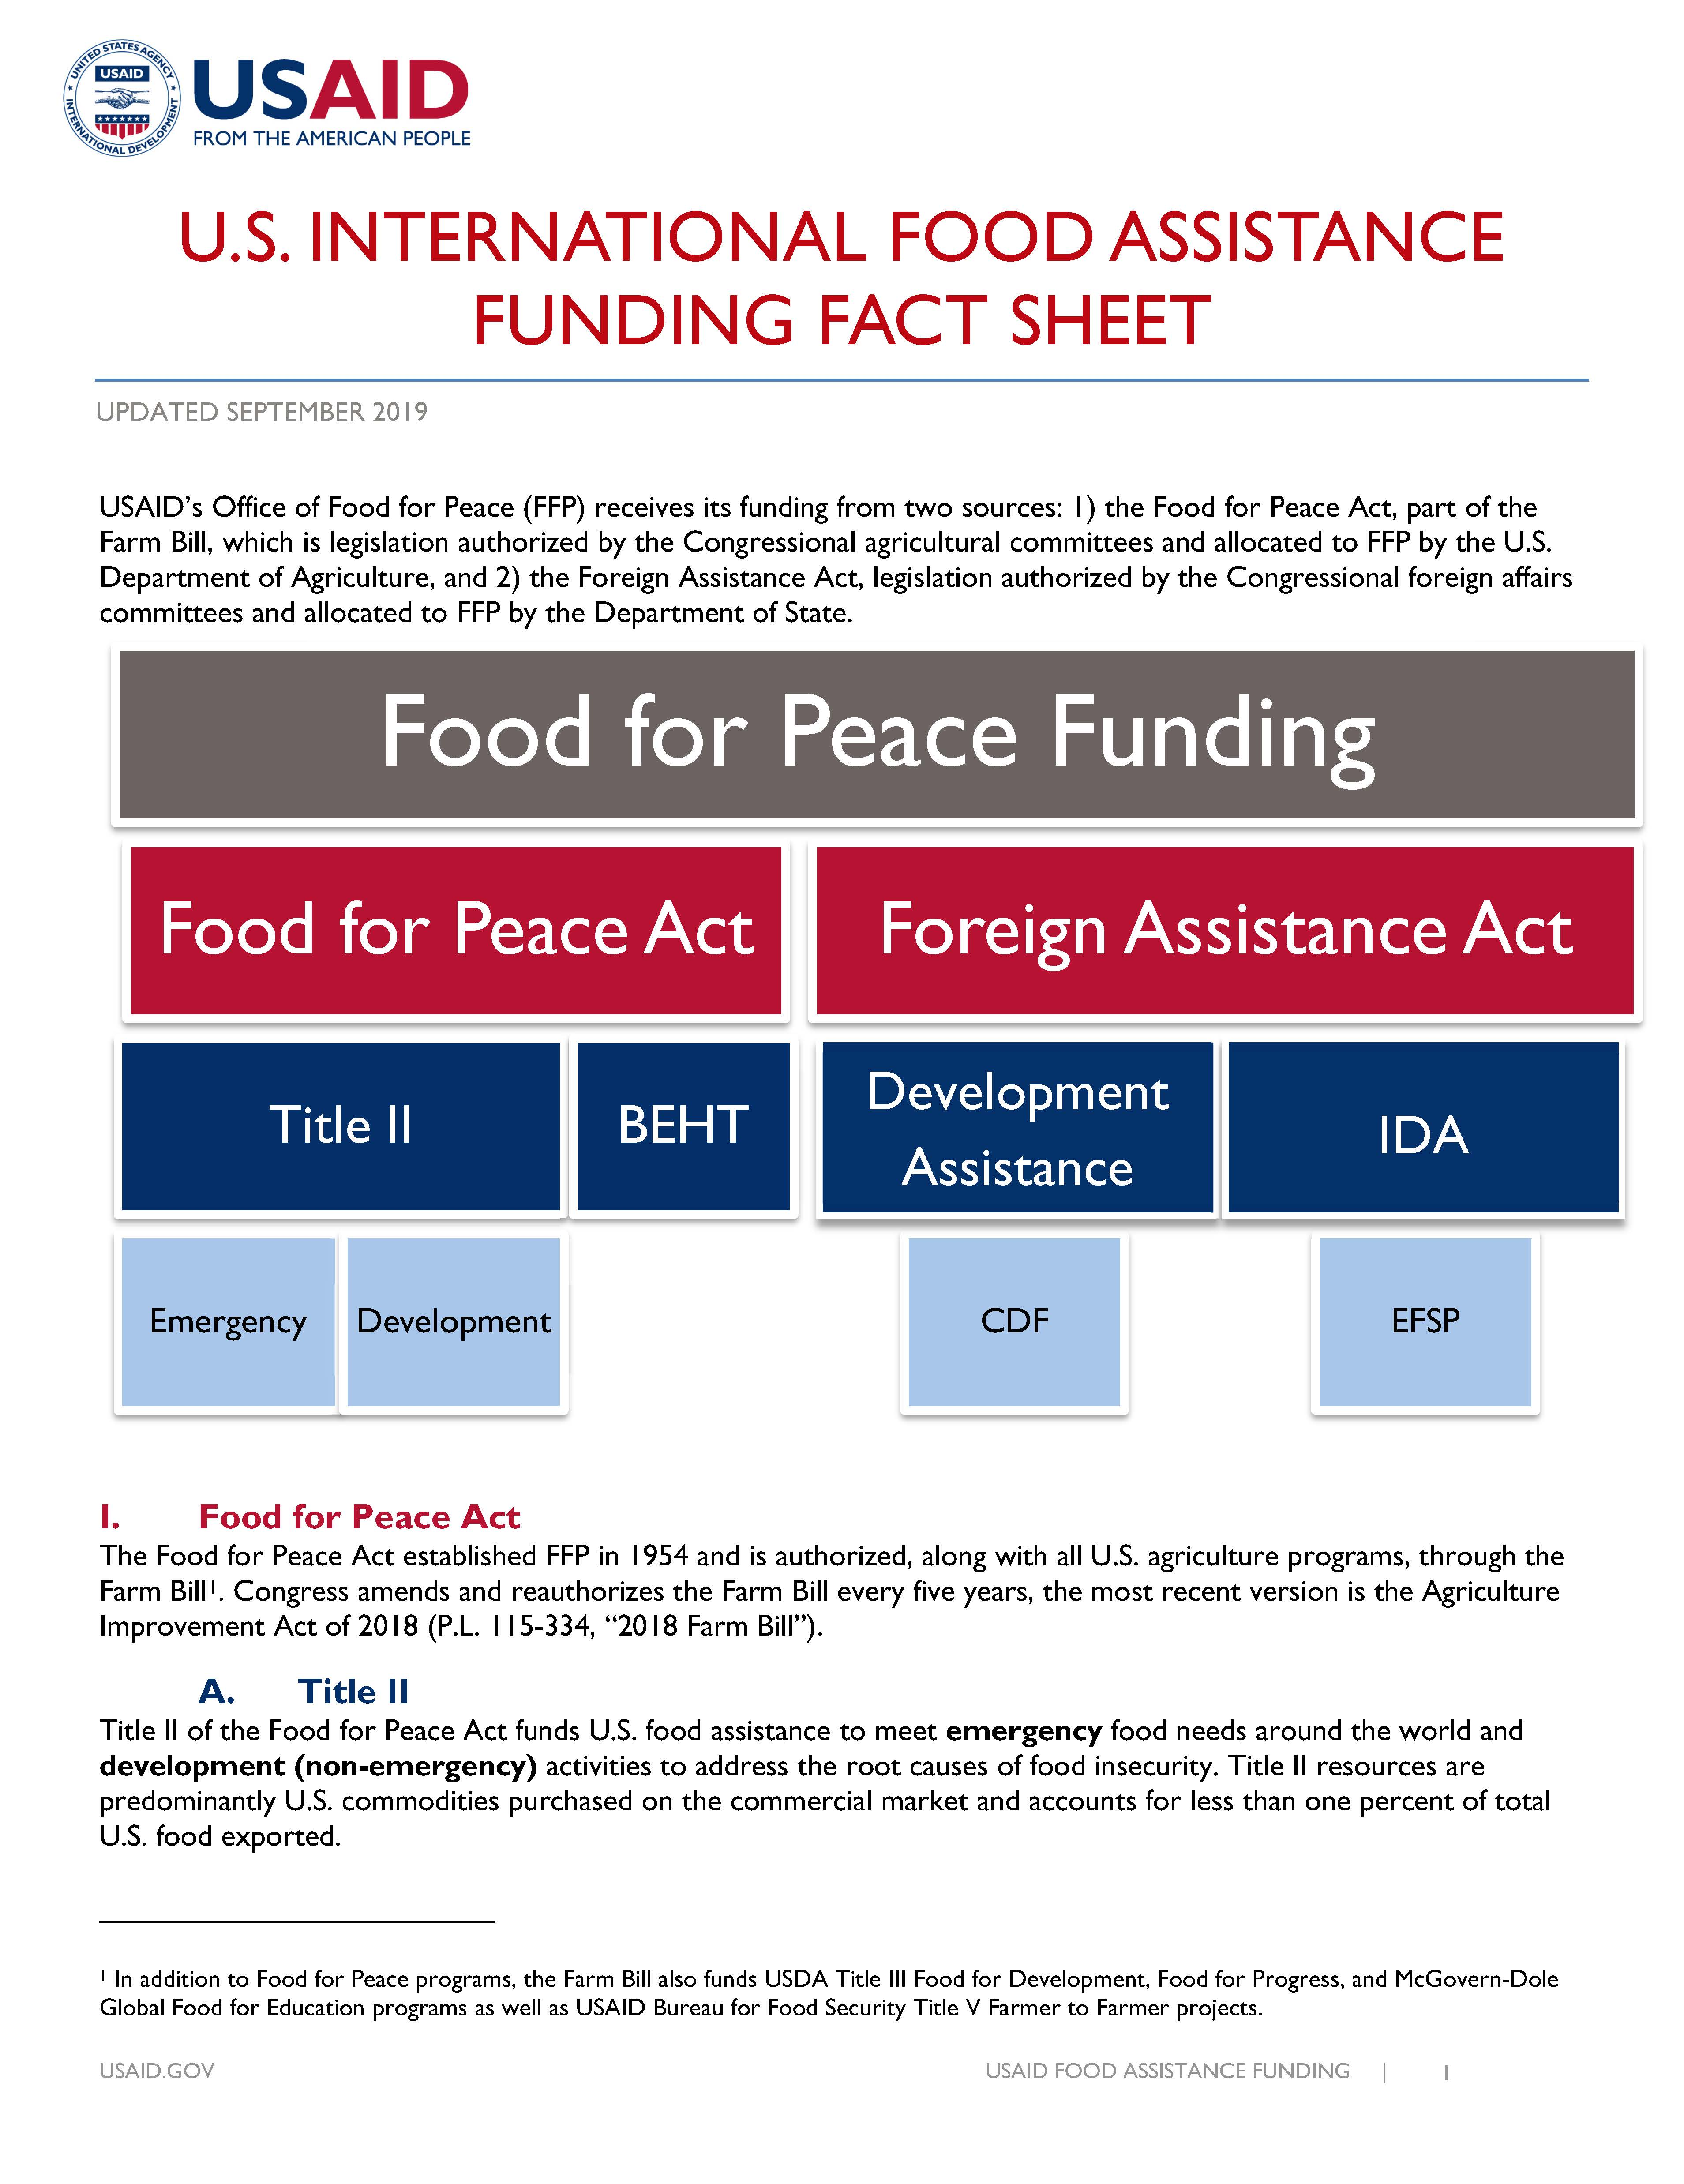 Food for Peace Funding Overview